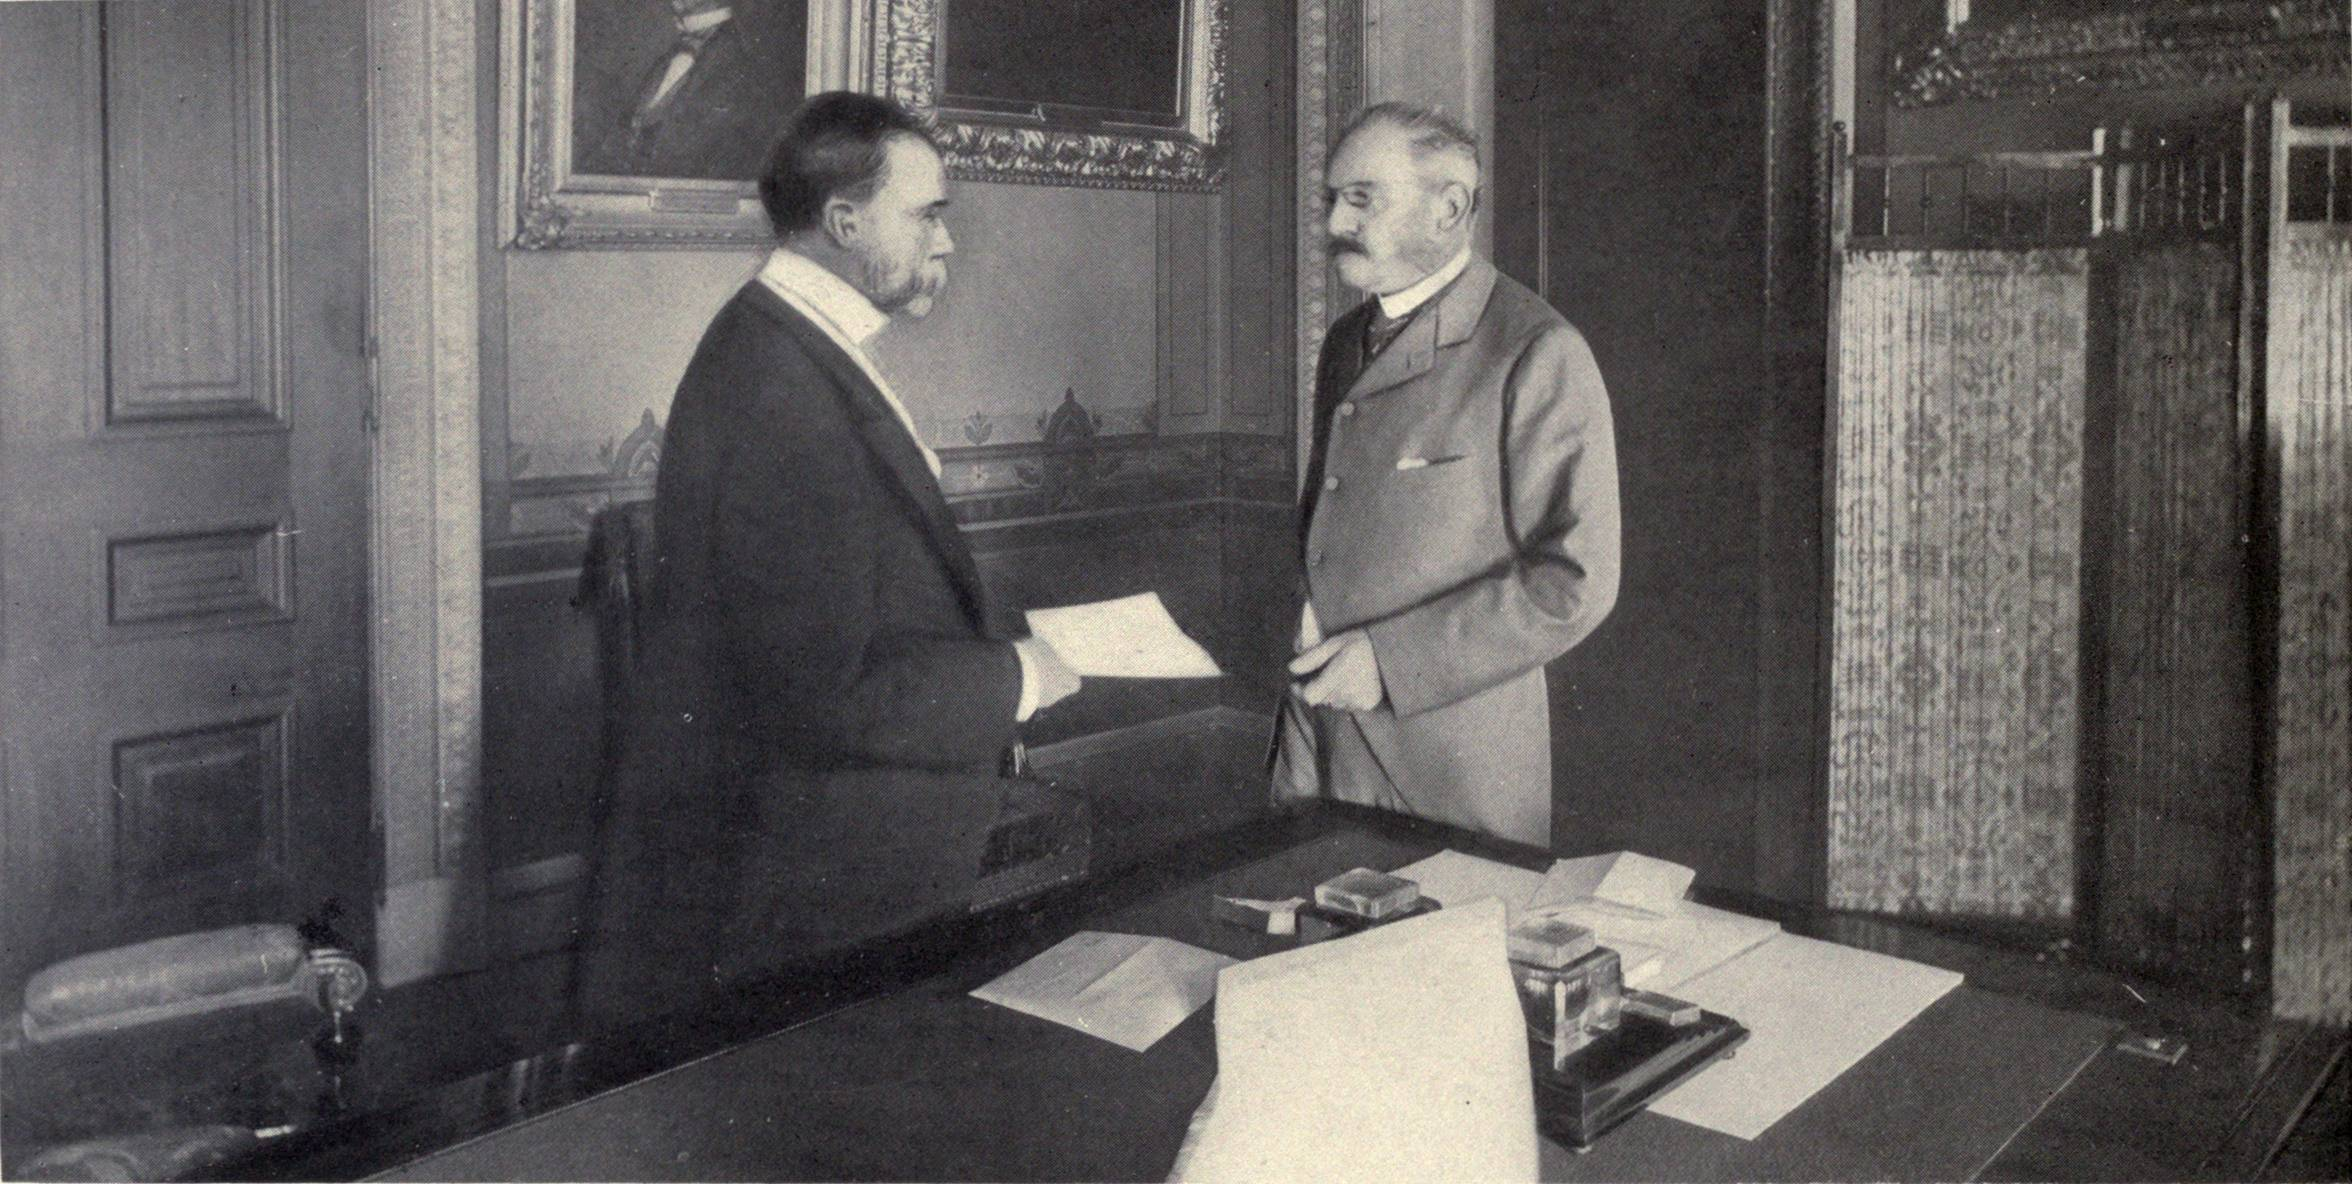 http://upload.wikimedia.org/wikipedia/commons/7/7d/John_Hay_presents_Jules_Cambon_$20M_per_Treaty_of_Paris,_1899.JPG